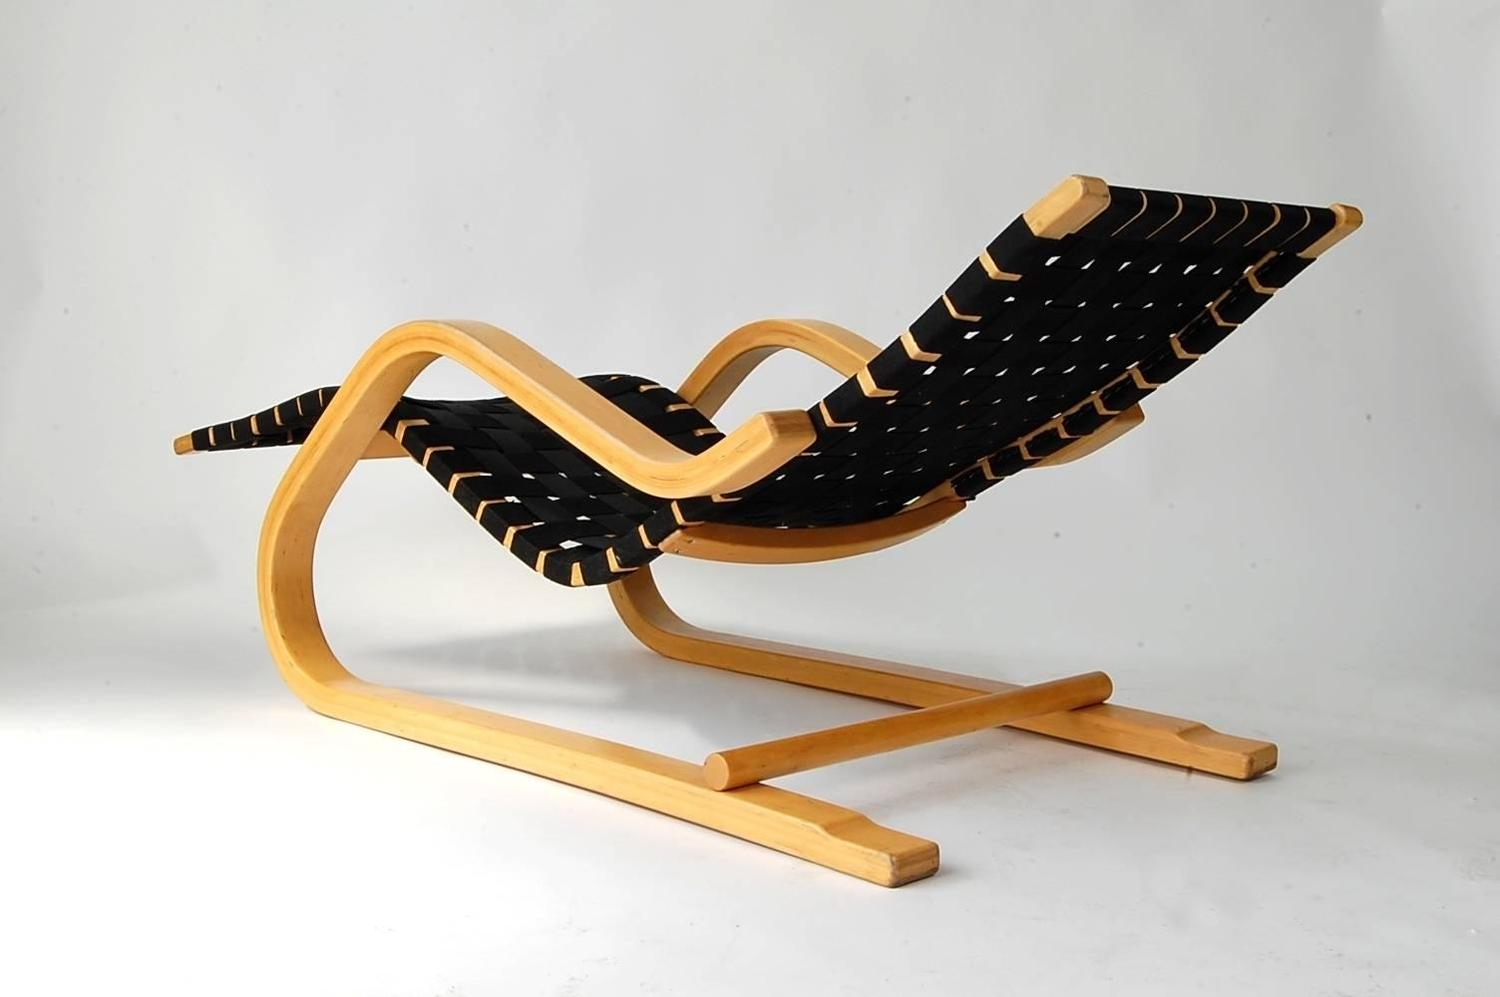 Alvar aalto model 43 chaise lounge for sale at 1stdibs for Alvar aalto chaise longue